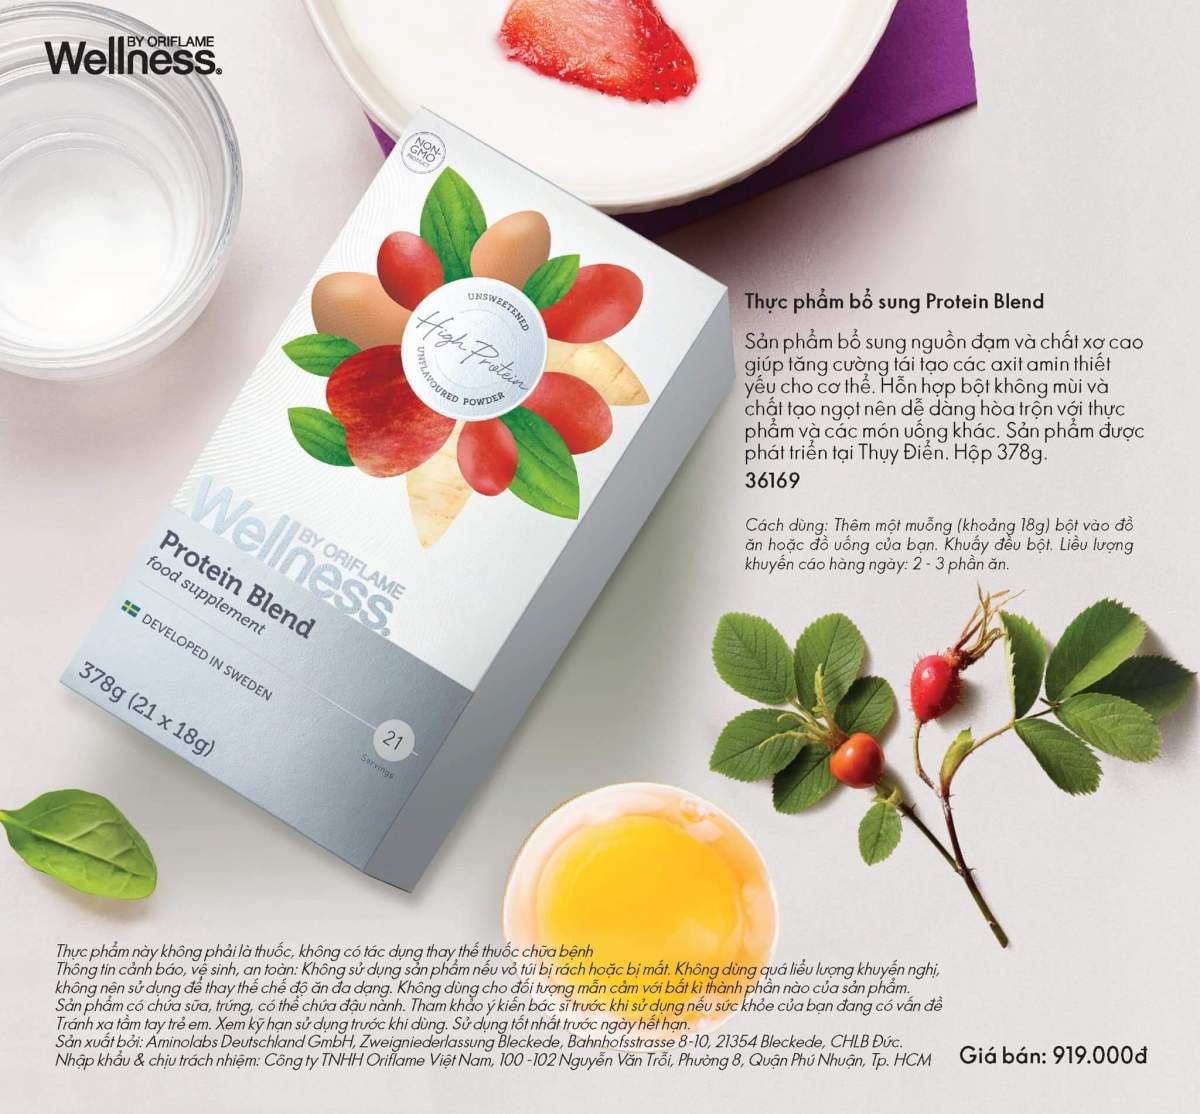 Catalogue thực phẩm bổ sung - Wellness By Oriflame 2019 2